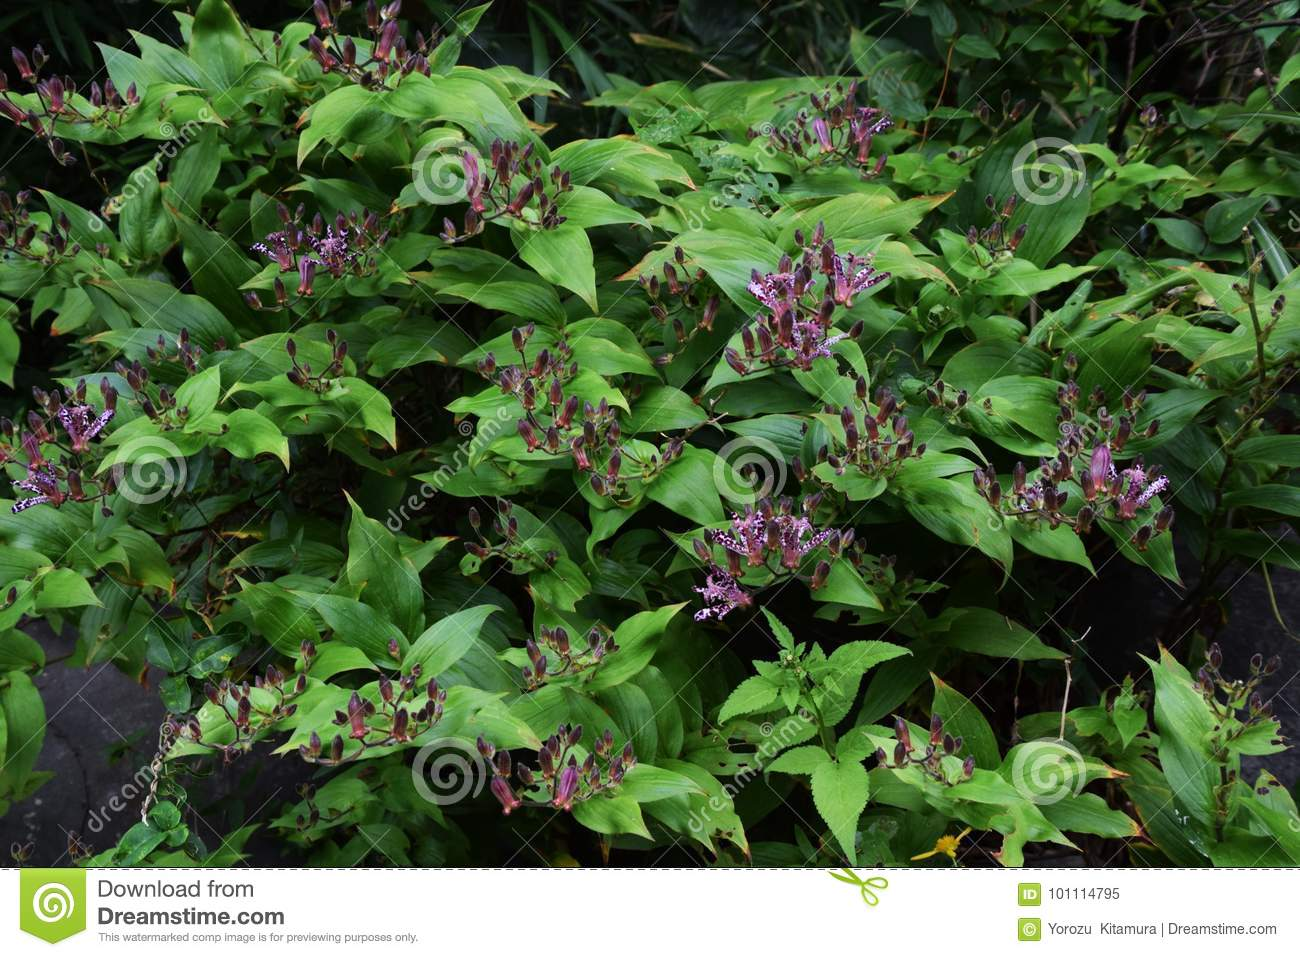 Japanese toad lily stock image image of flowers natural 101114795 japanese toad lily flowers natural izmirmasajfo